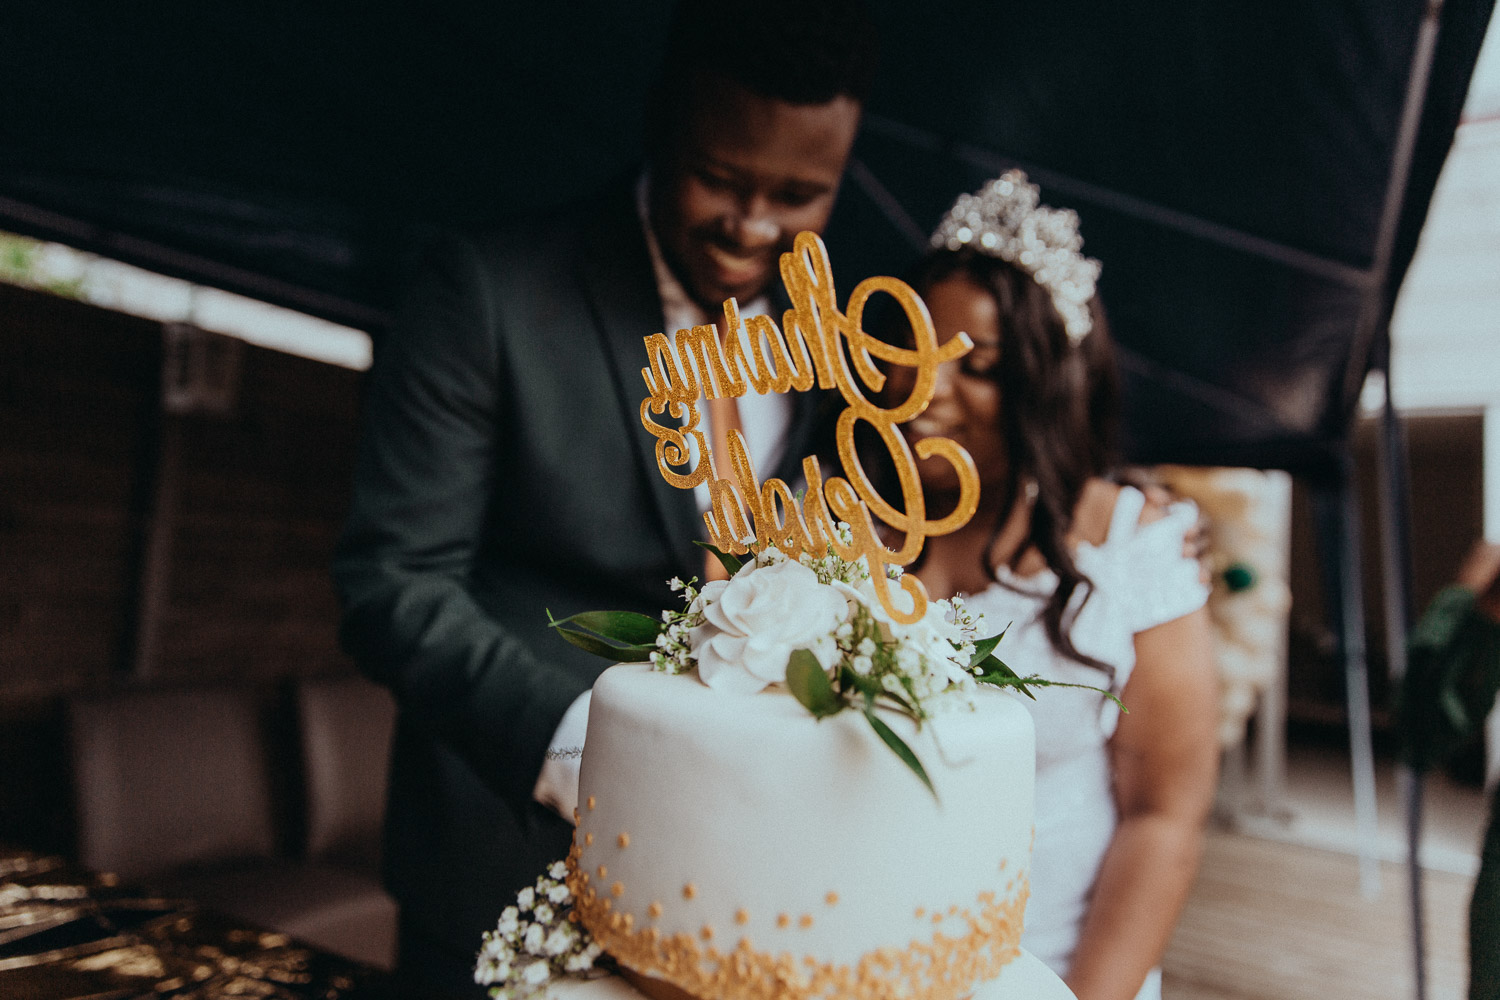 Picture made by wedding photographer in Amsterdam that shows wedding cake with couple names on the top. Married couple is out of focus is staying behind a cake and going to cut it.